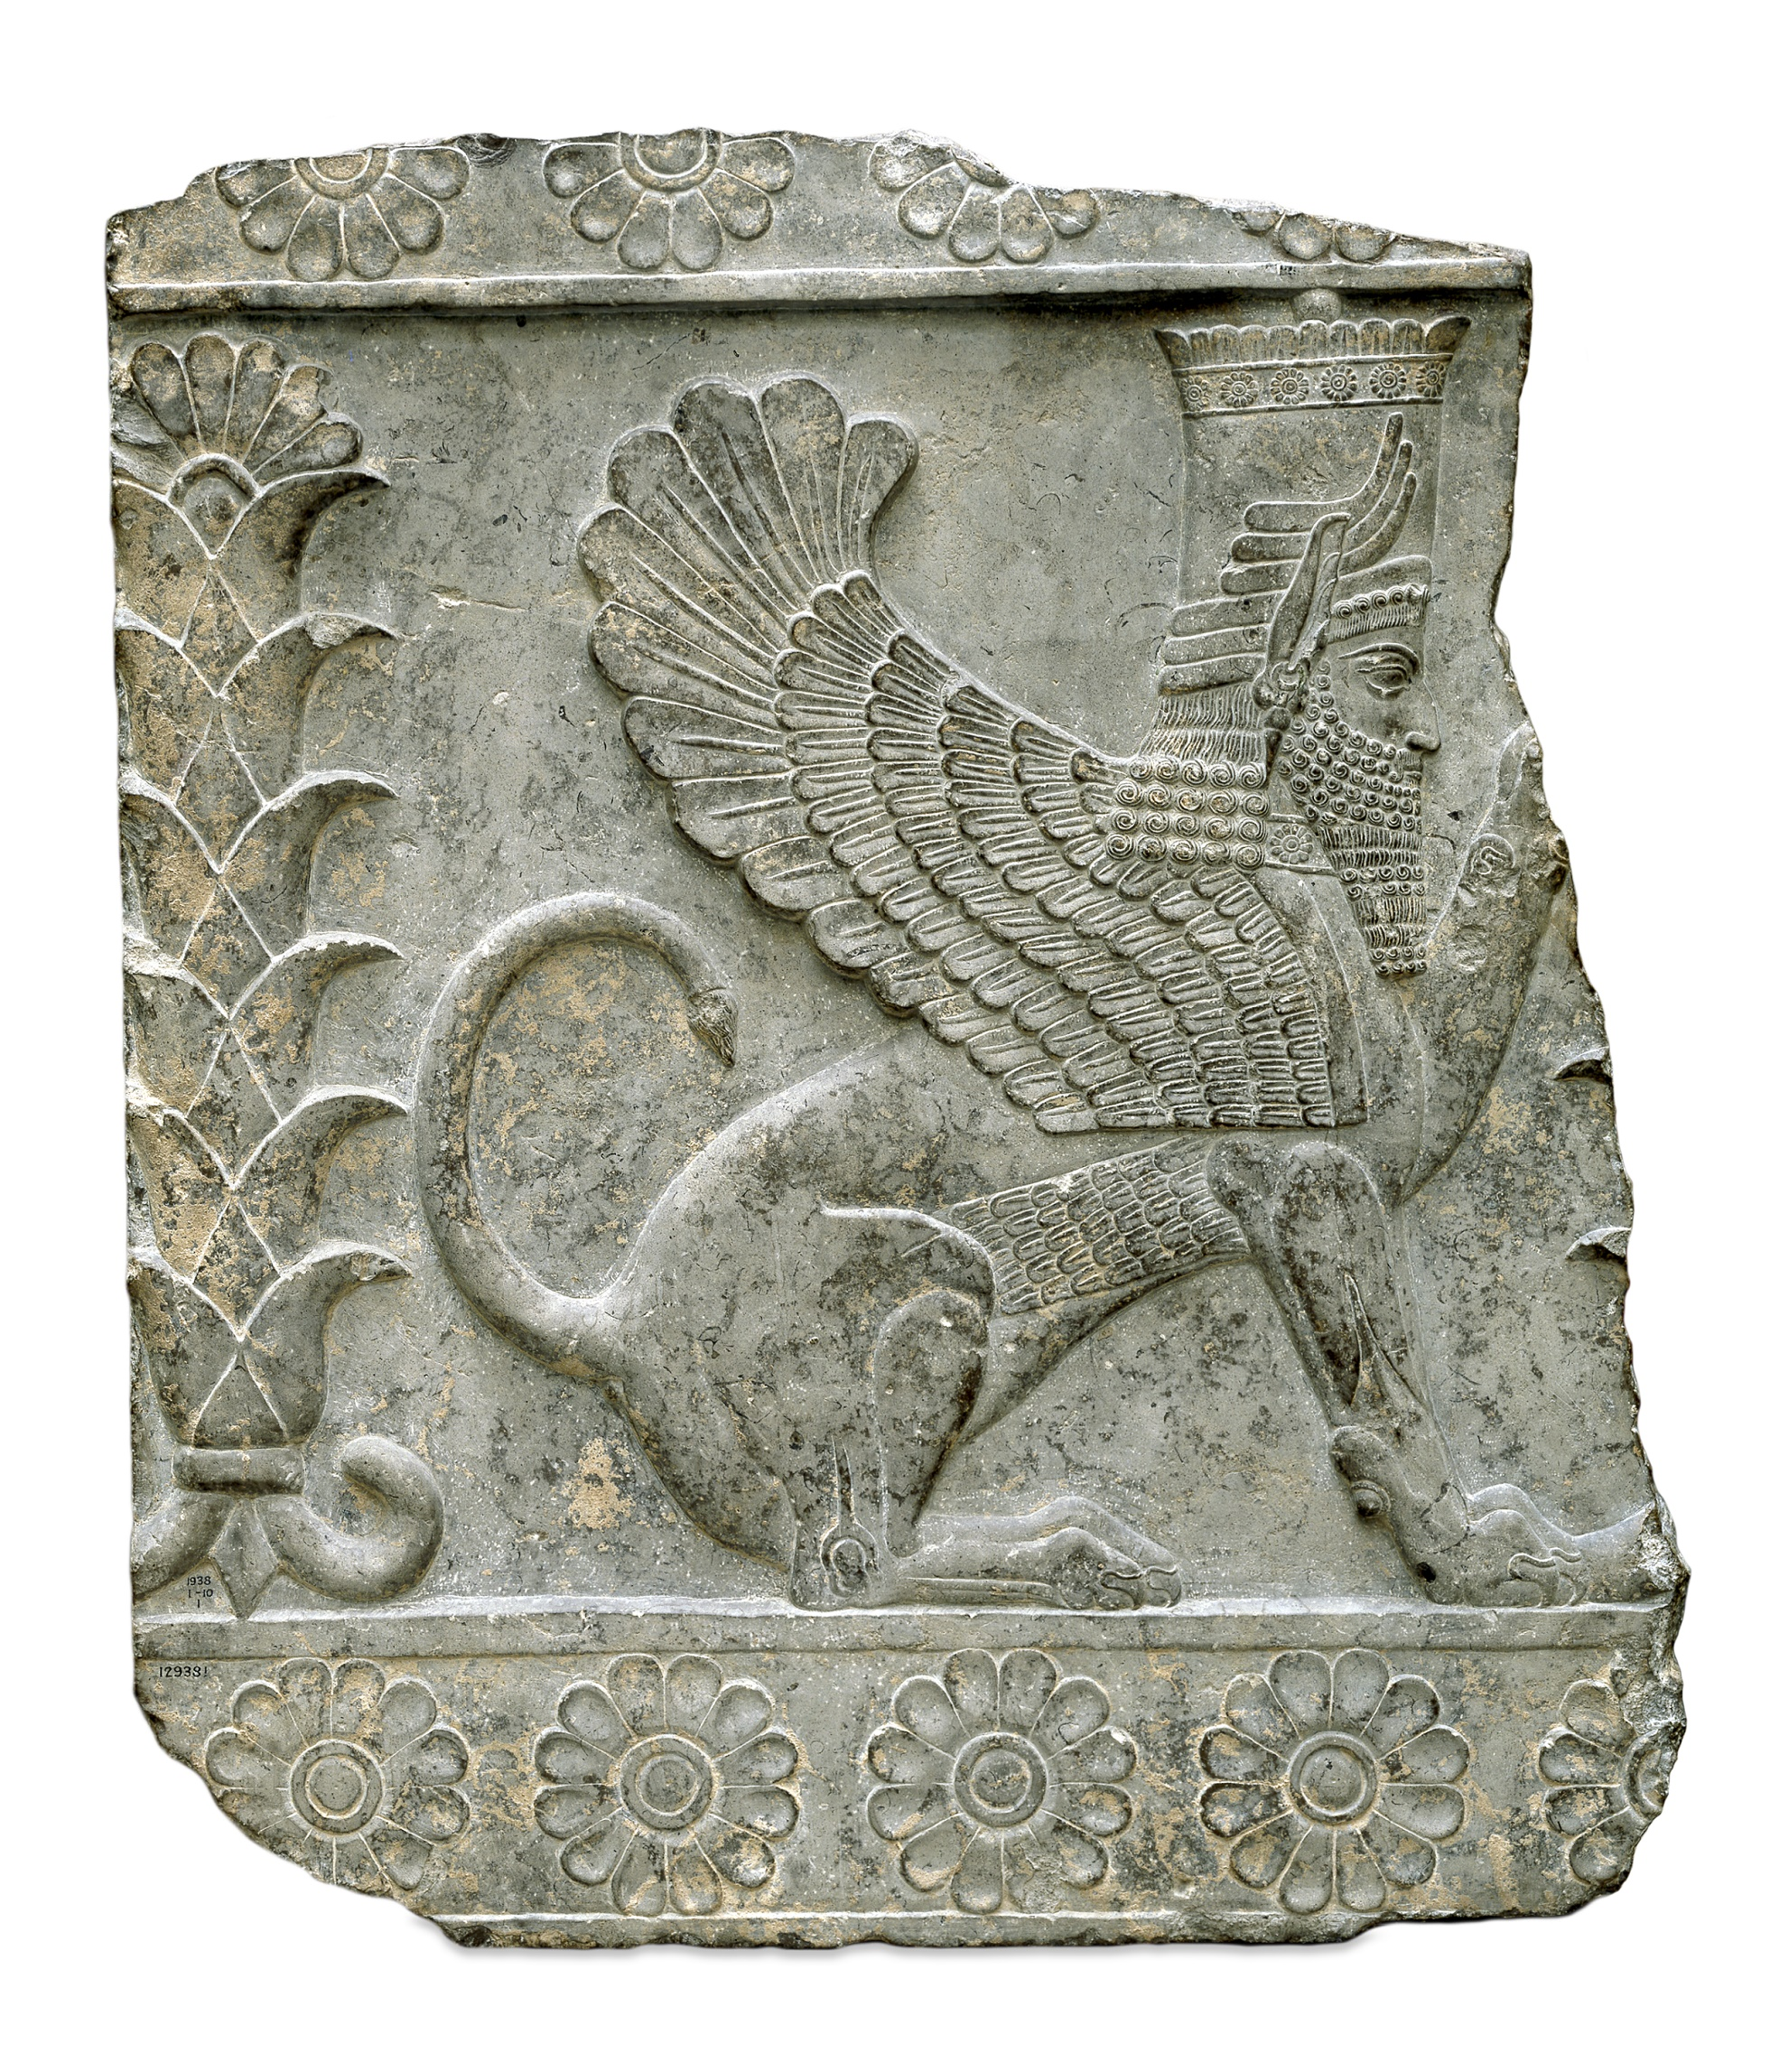 Relief showing a seated bearded male sphinx facing right with raised left forepaw, wearing divine horned head-dress with band of rosettes below the feathered top